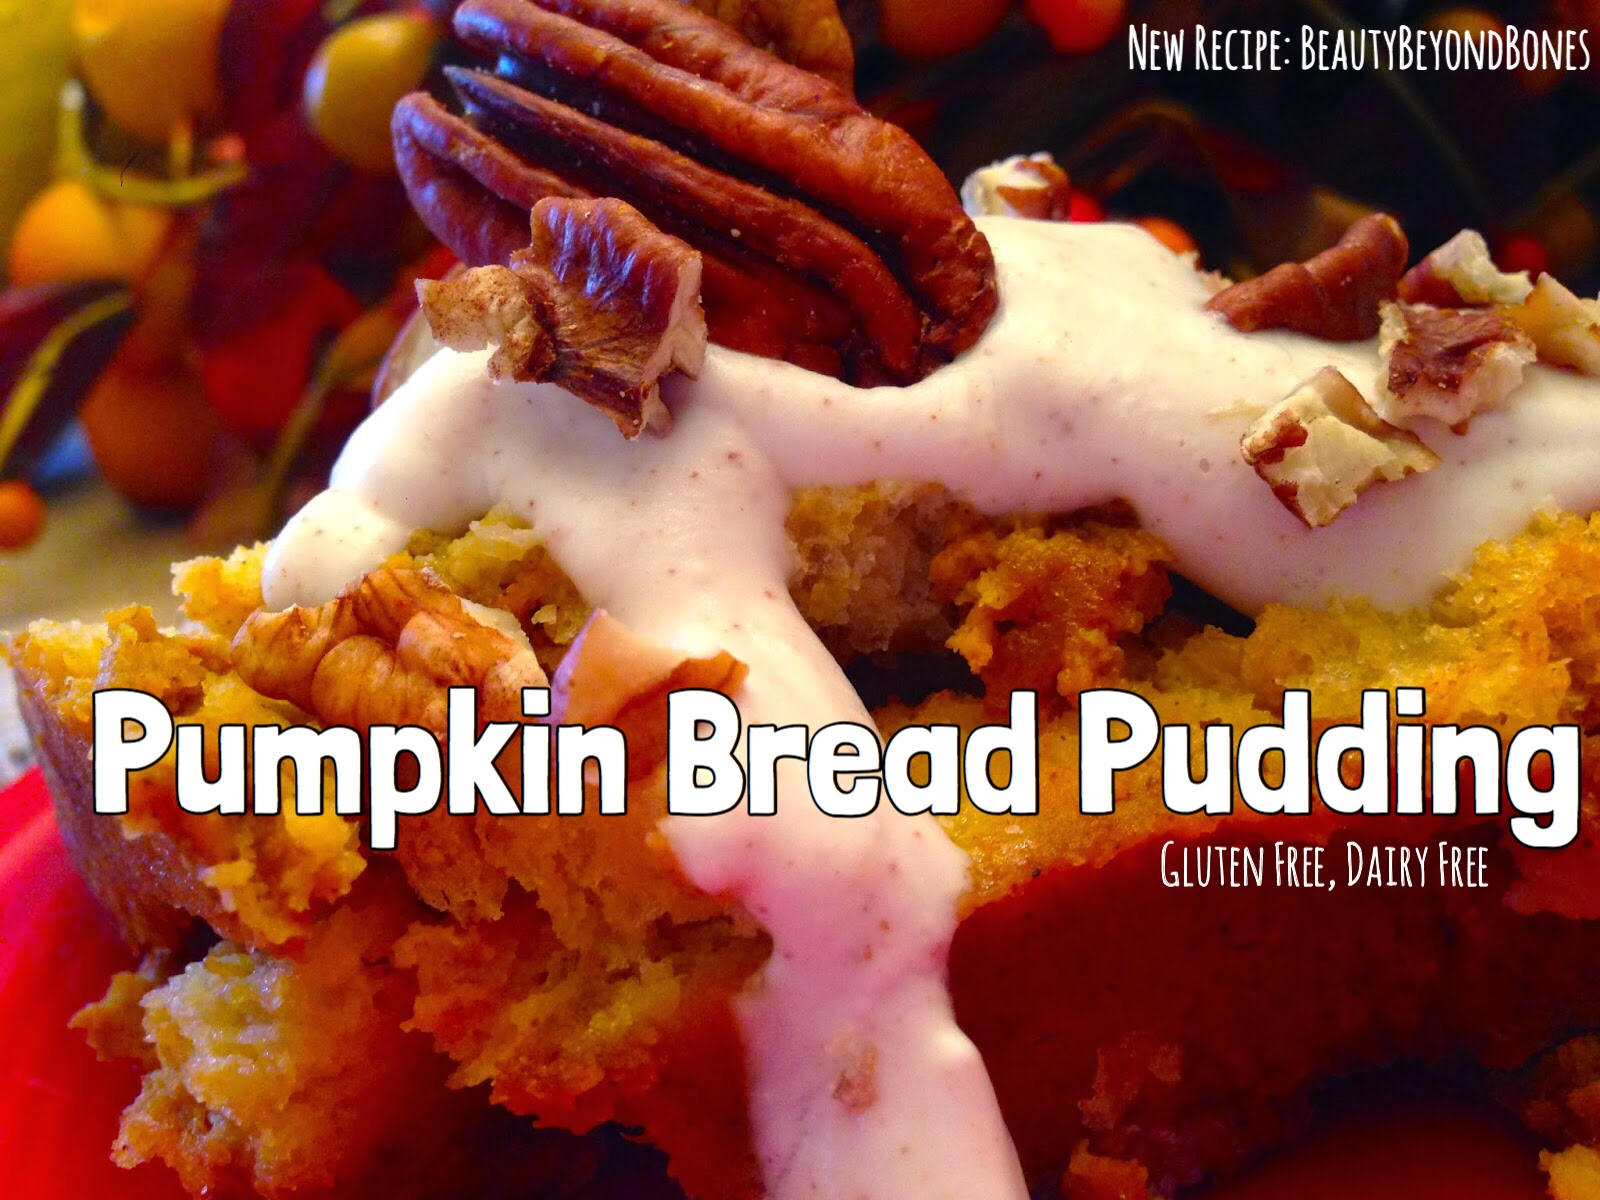 Pumpkin Bread Pudding!